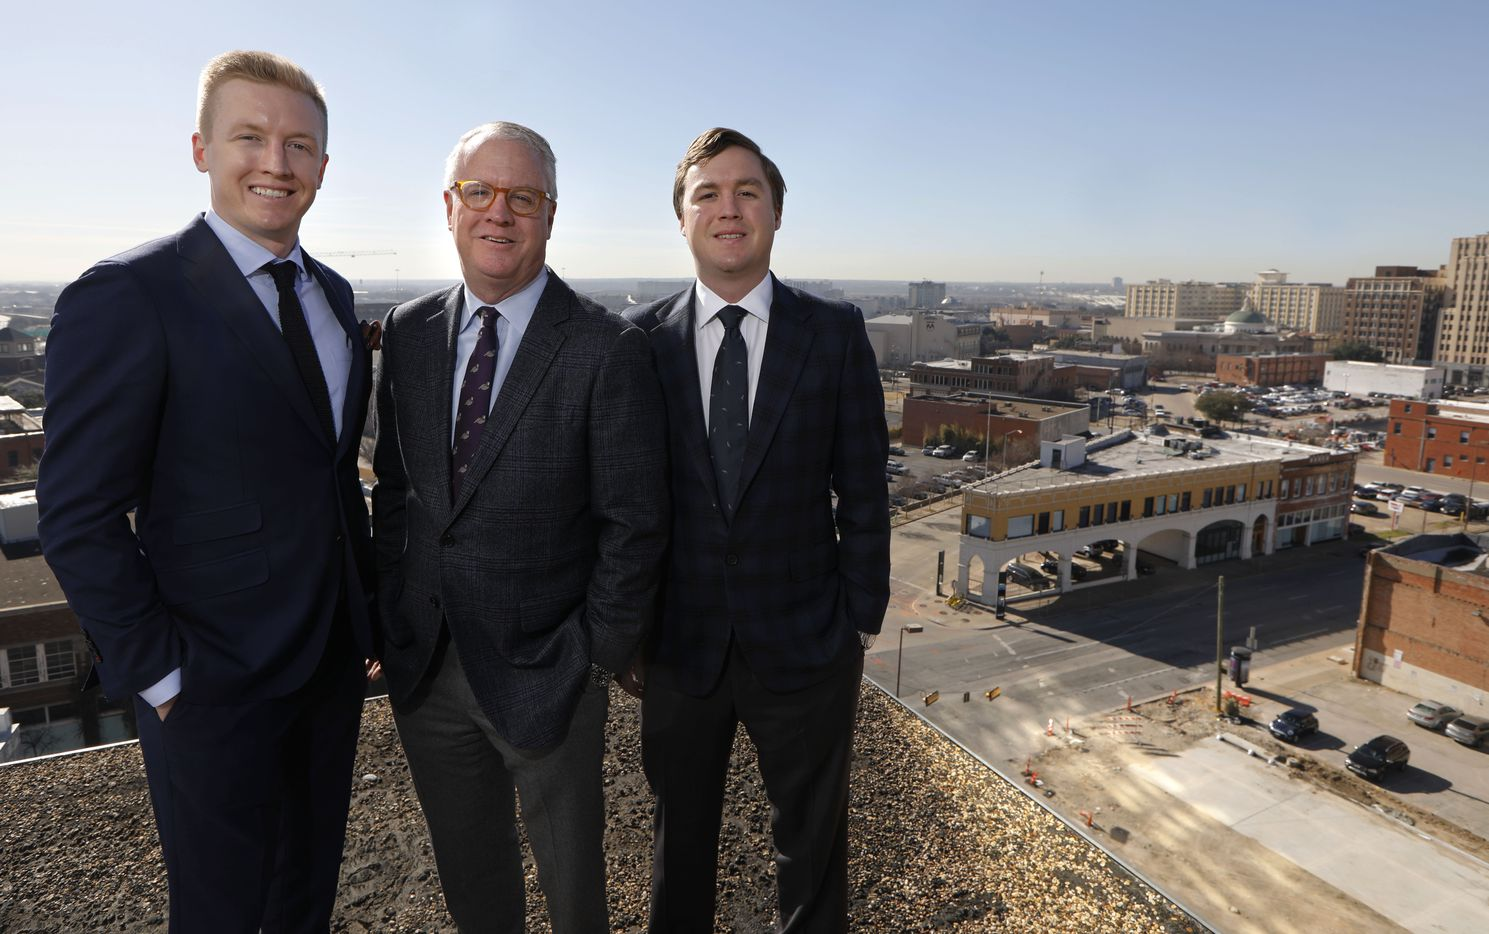 Shawn Todd, founder and CEO of Todd Interests, center, with his sons, Patrick, left, and Philip of Todd Interests, pose for a portrait from the roof of one of their buildings, located at 2200 Main St. in downtown Dallas.